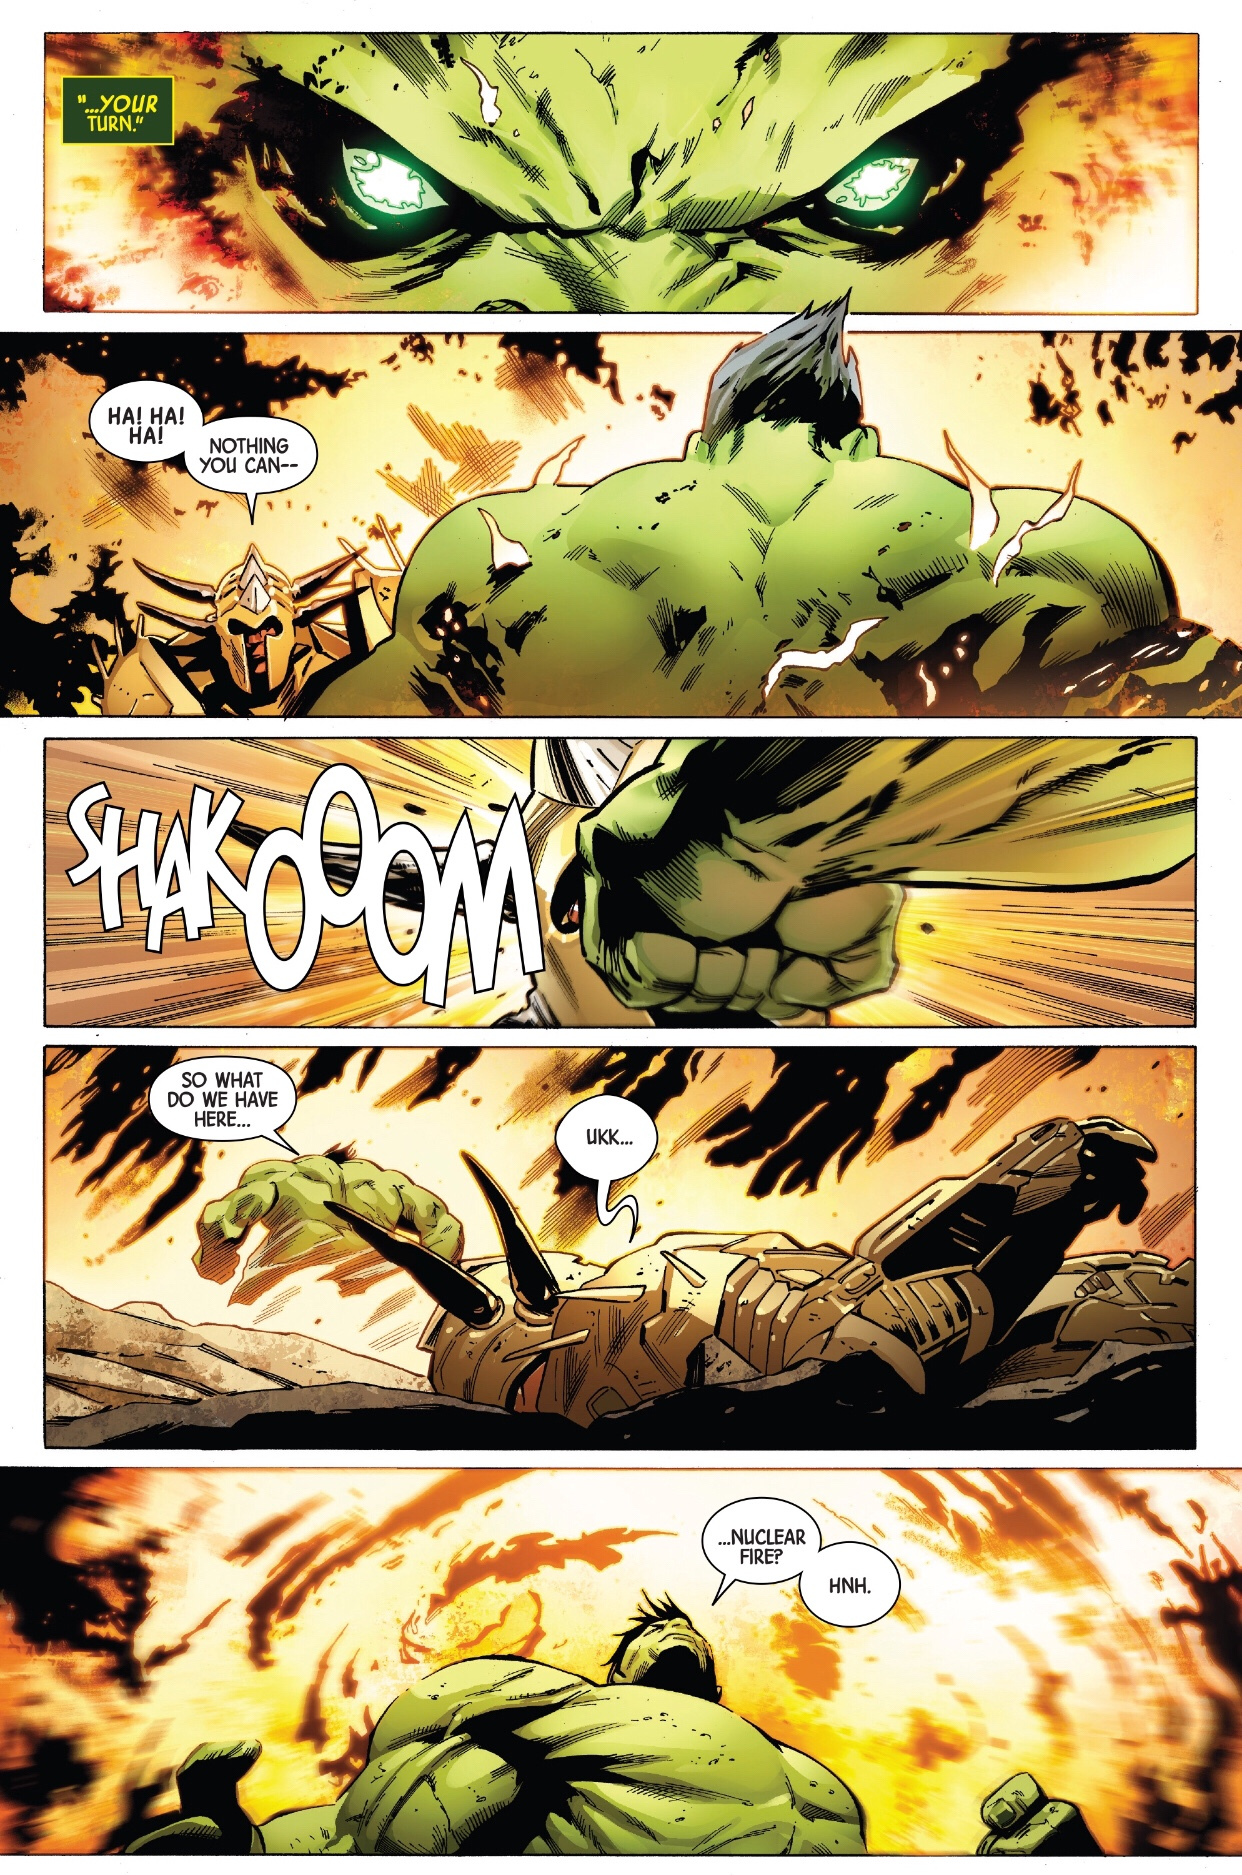 Return to Planet Hulk